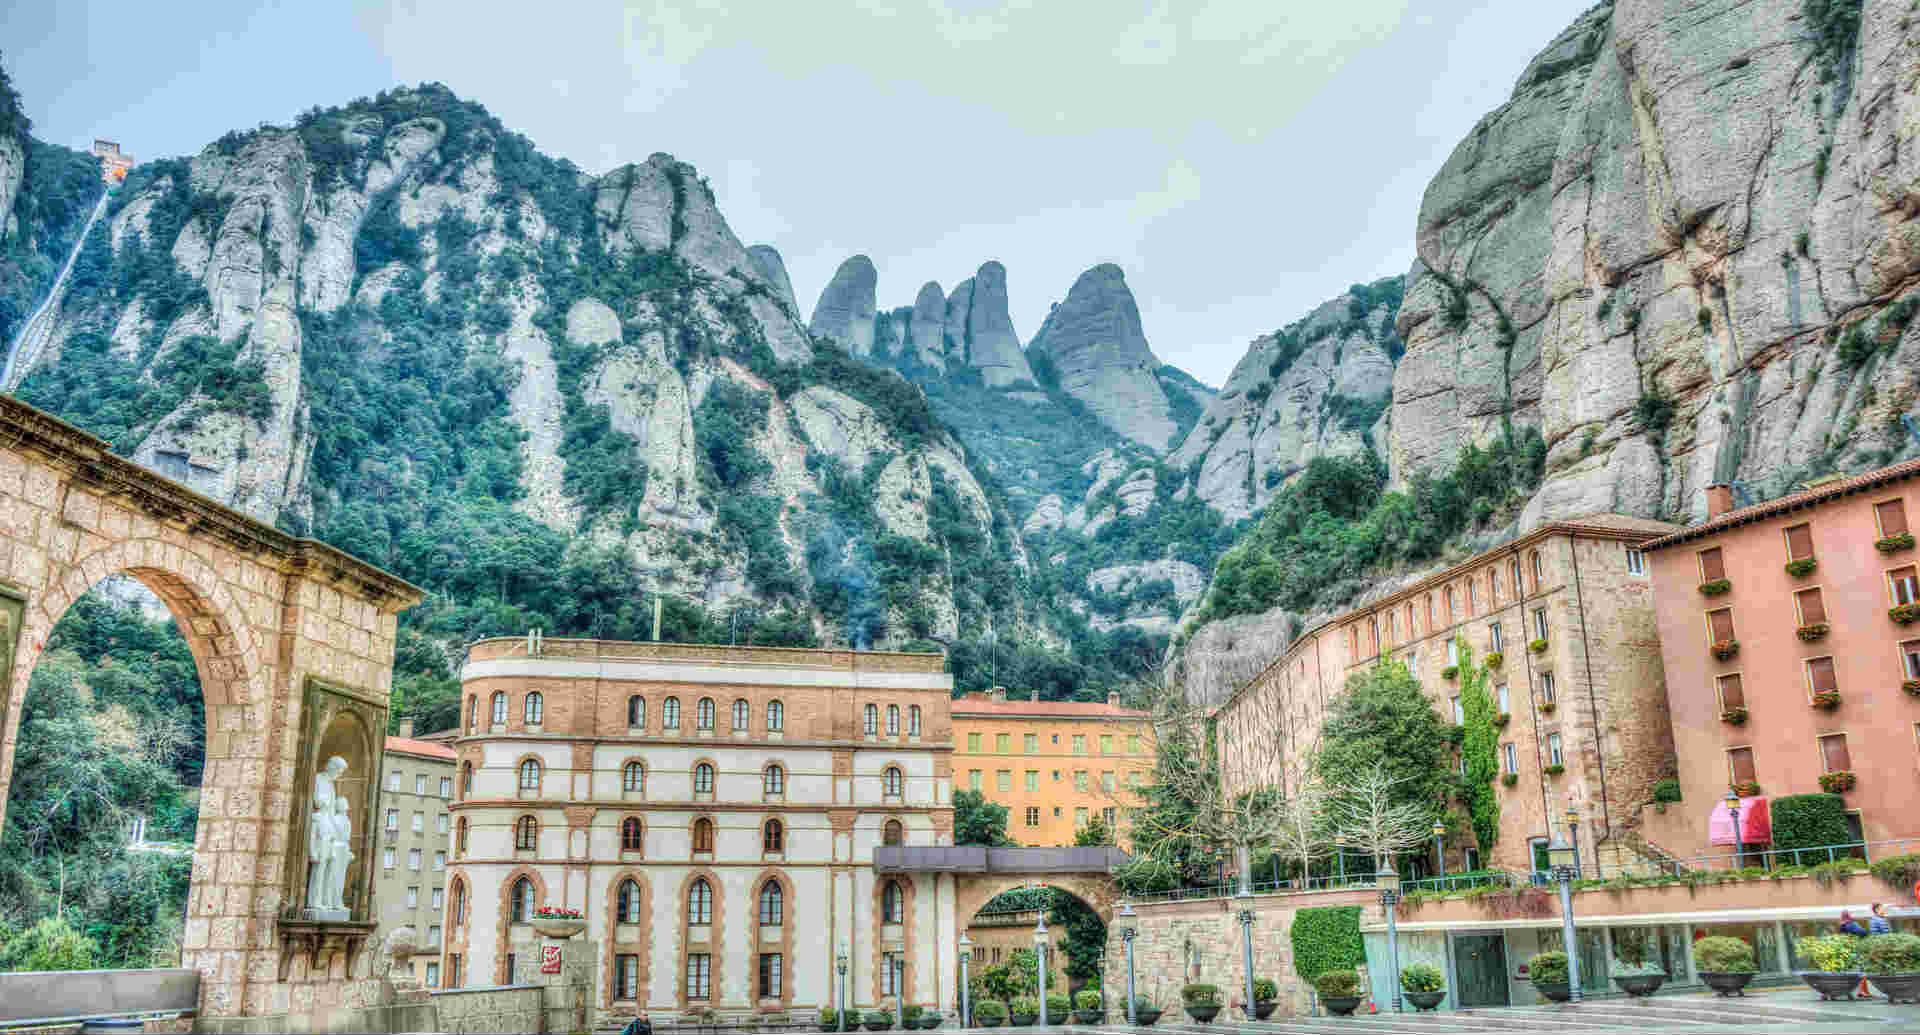 Monastery in the Montserrat mountains